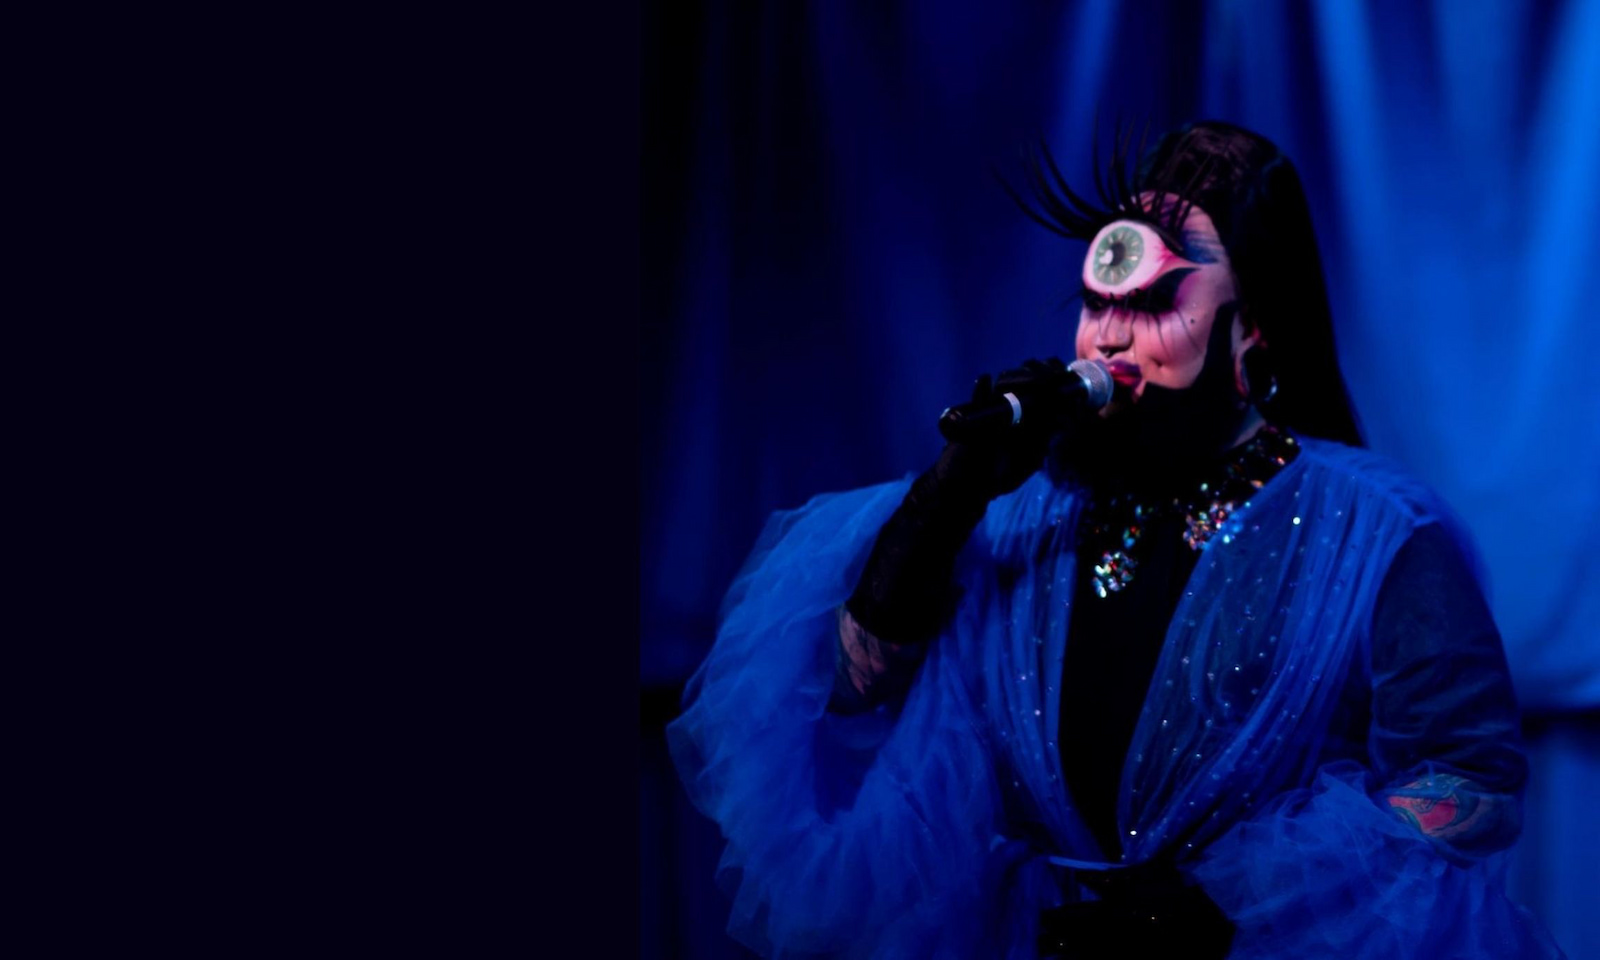 Ursula Major's Supermonster Drag Outfits Are Giving Us Life